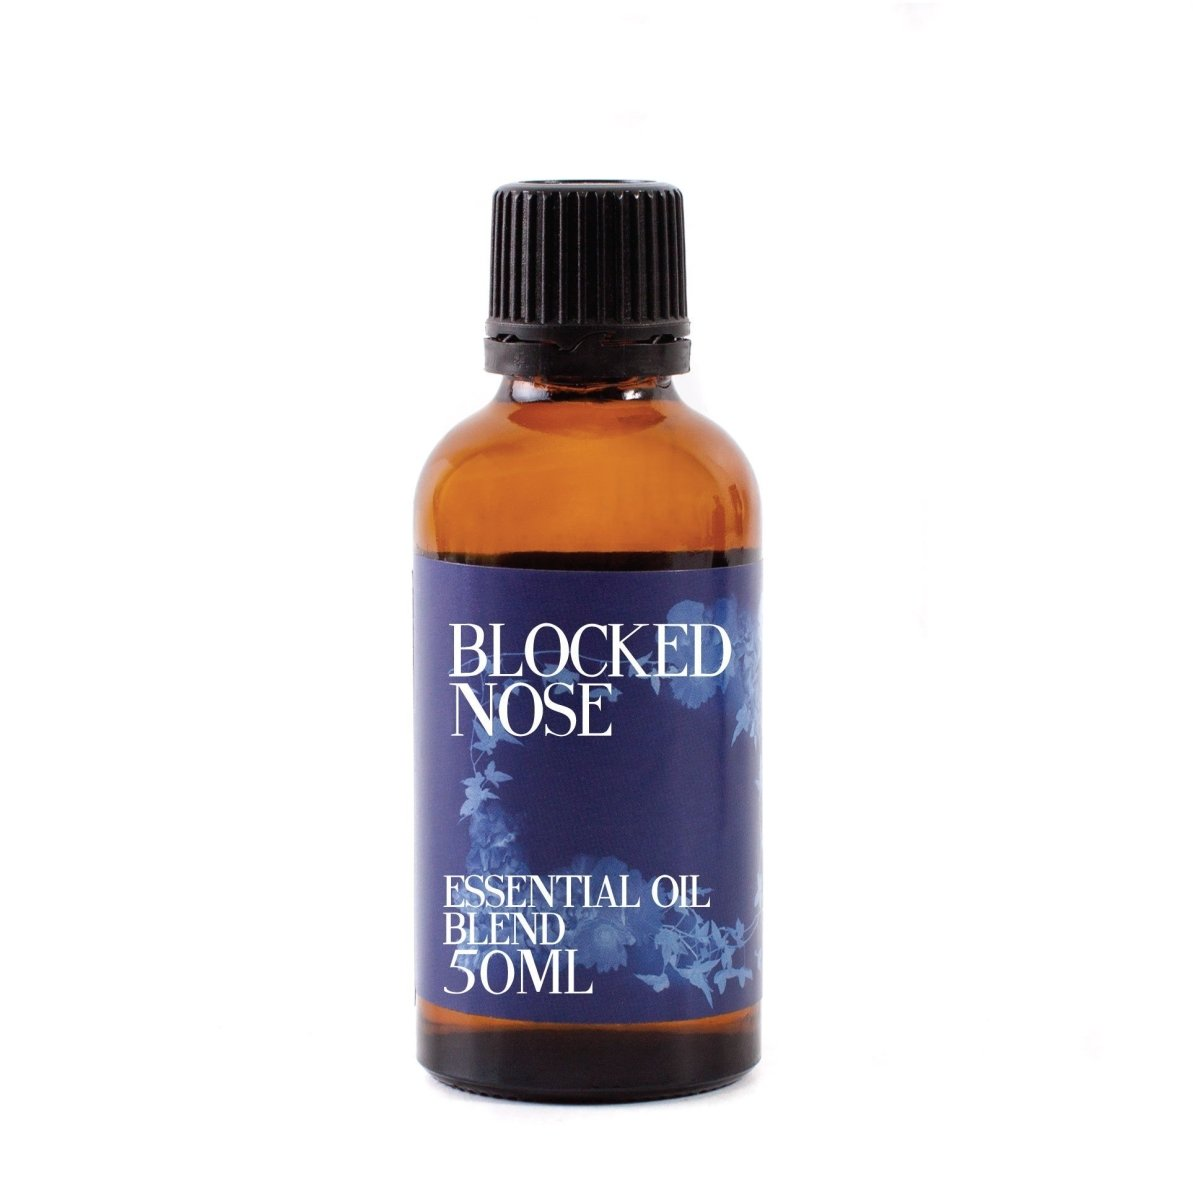 Blocked Nose - Essential Oil Blends - Mystic Moments UK